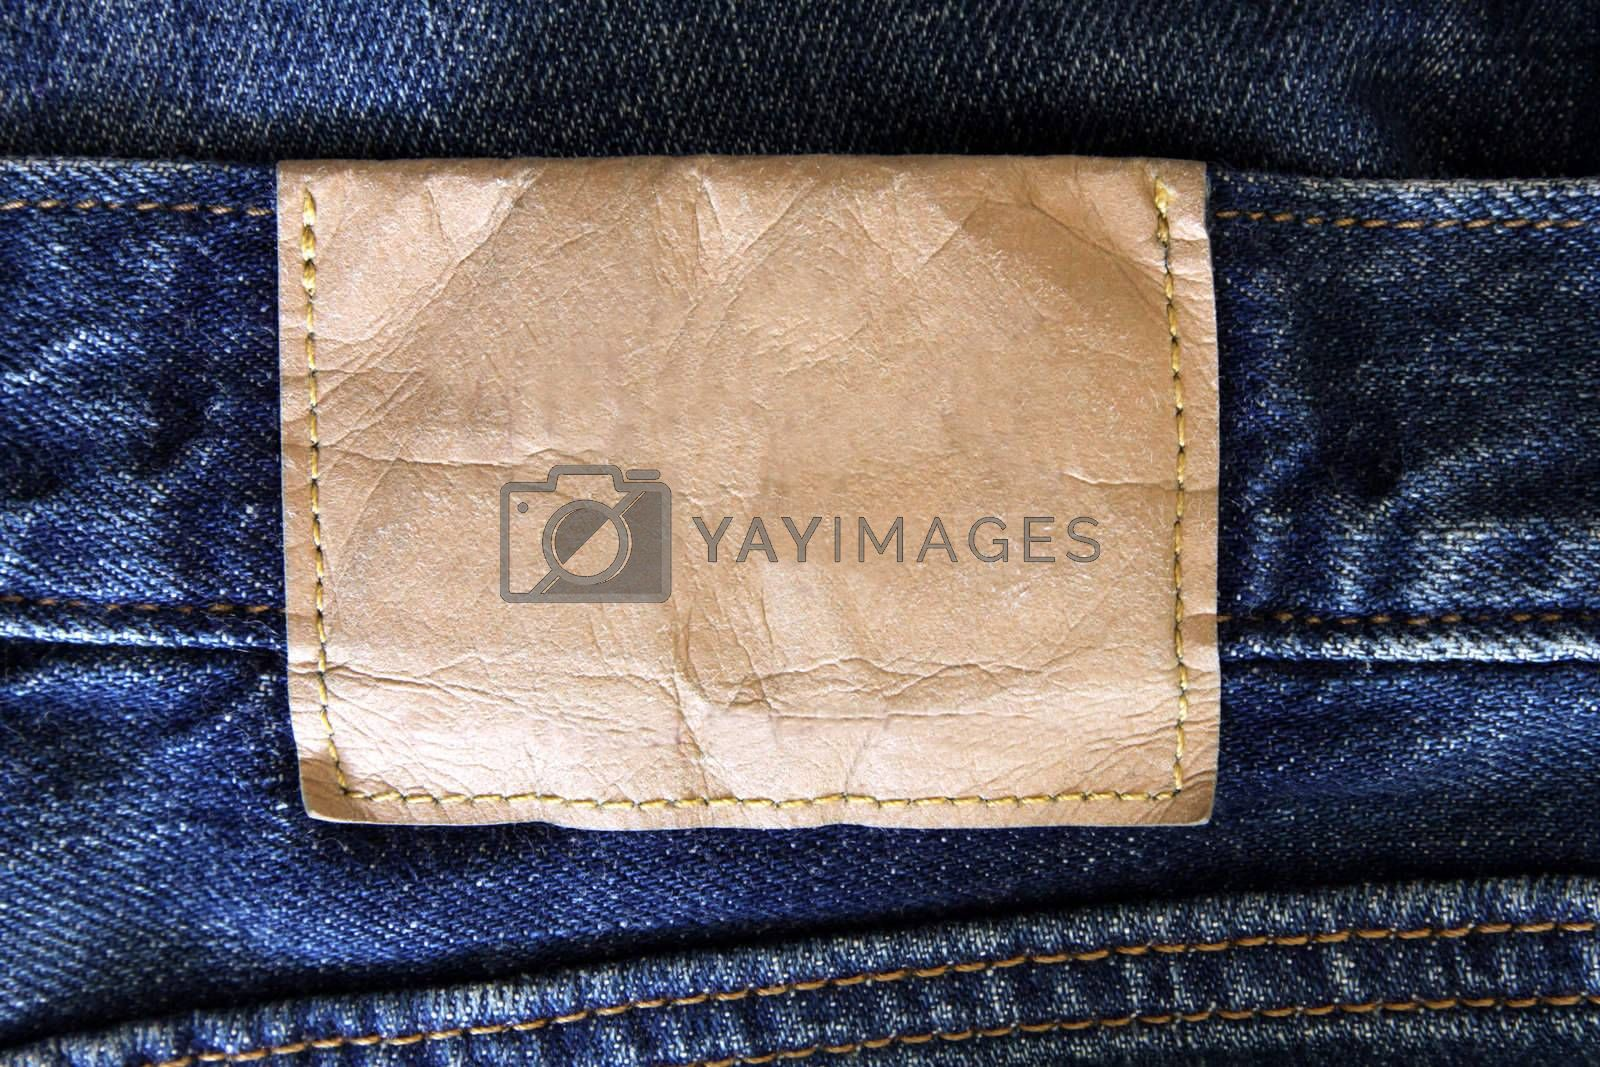 A blank label on a pair of jeans.